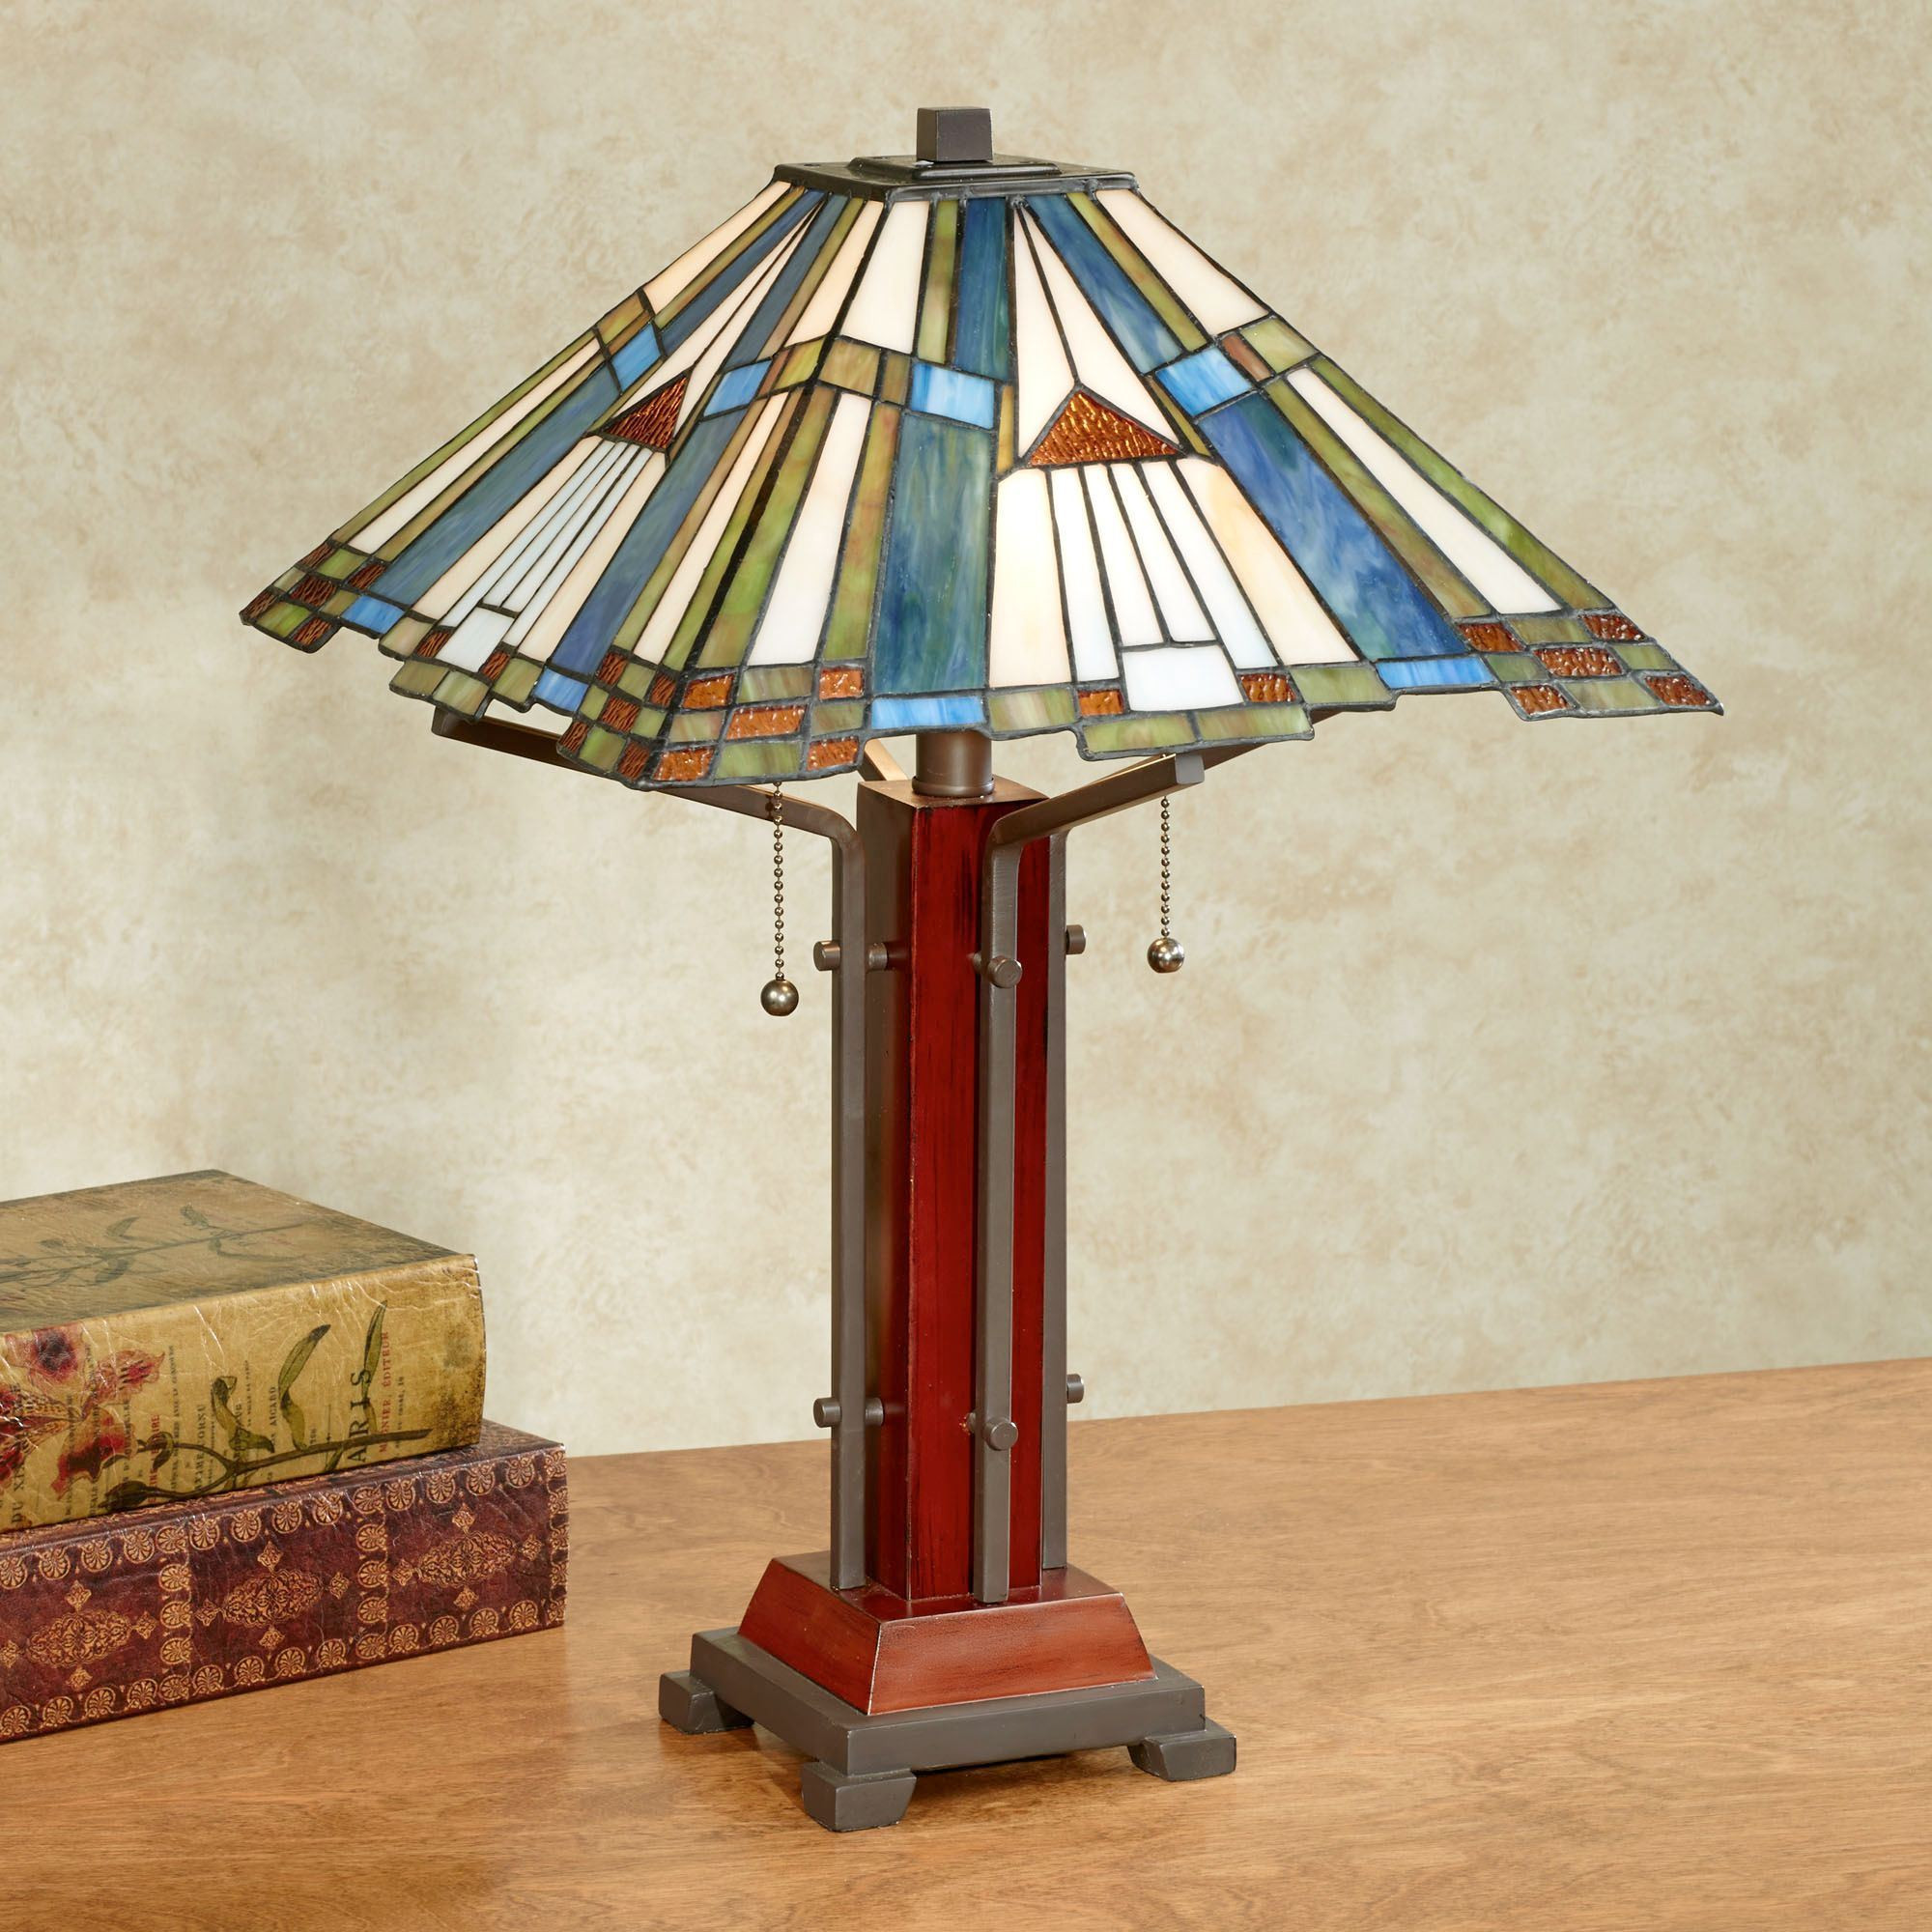 Best ideas about Stained Glass Desk Lamp . Save or Pin El Camino Southwest Stained Glass Table Lamp Now.